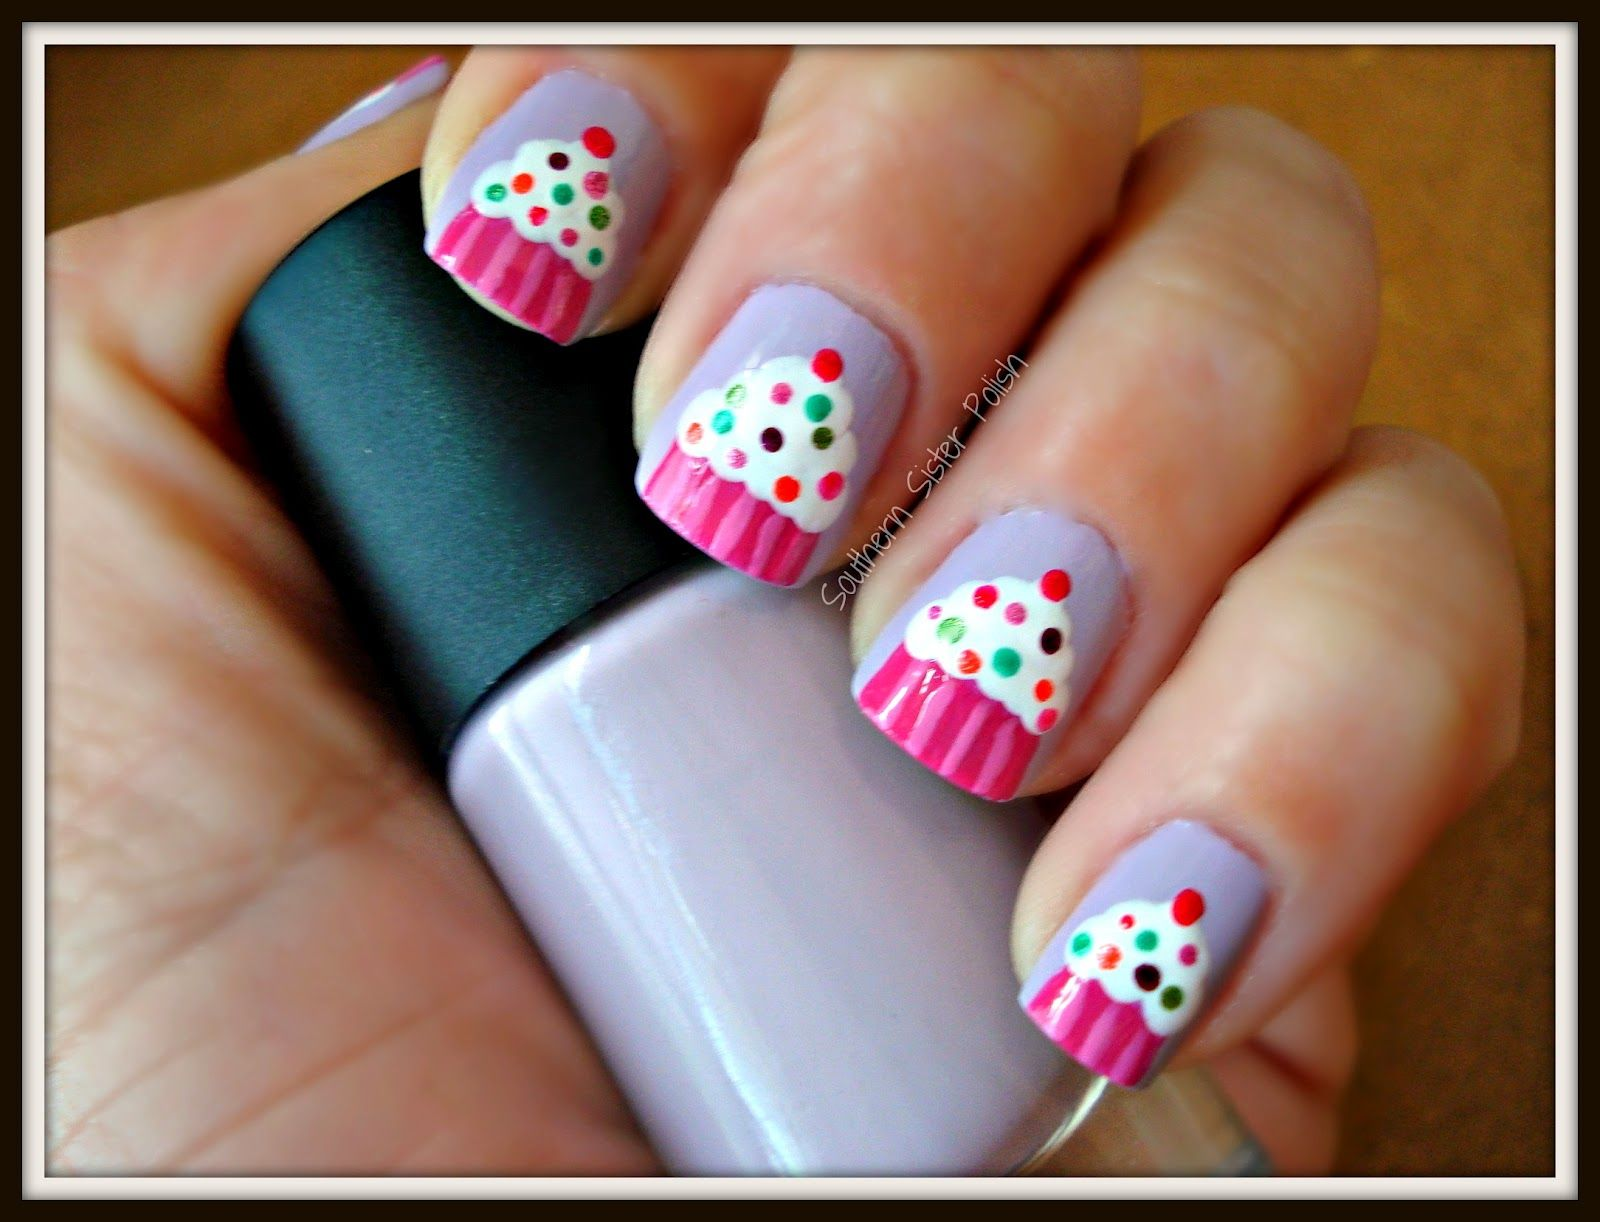 Nail Designs For Little Kids A little extra something:) | Make-up ...